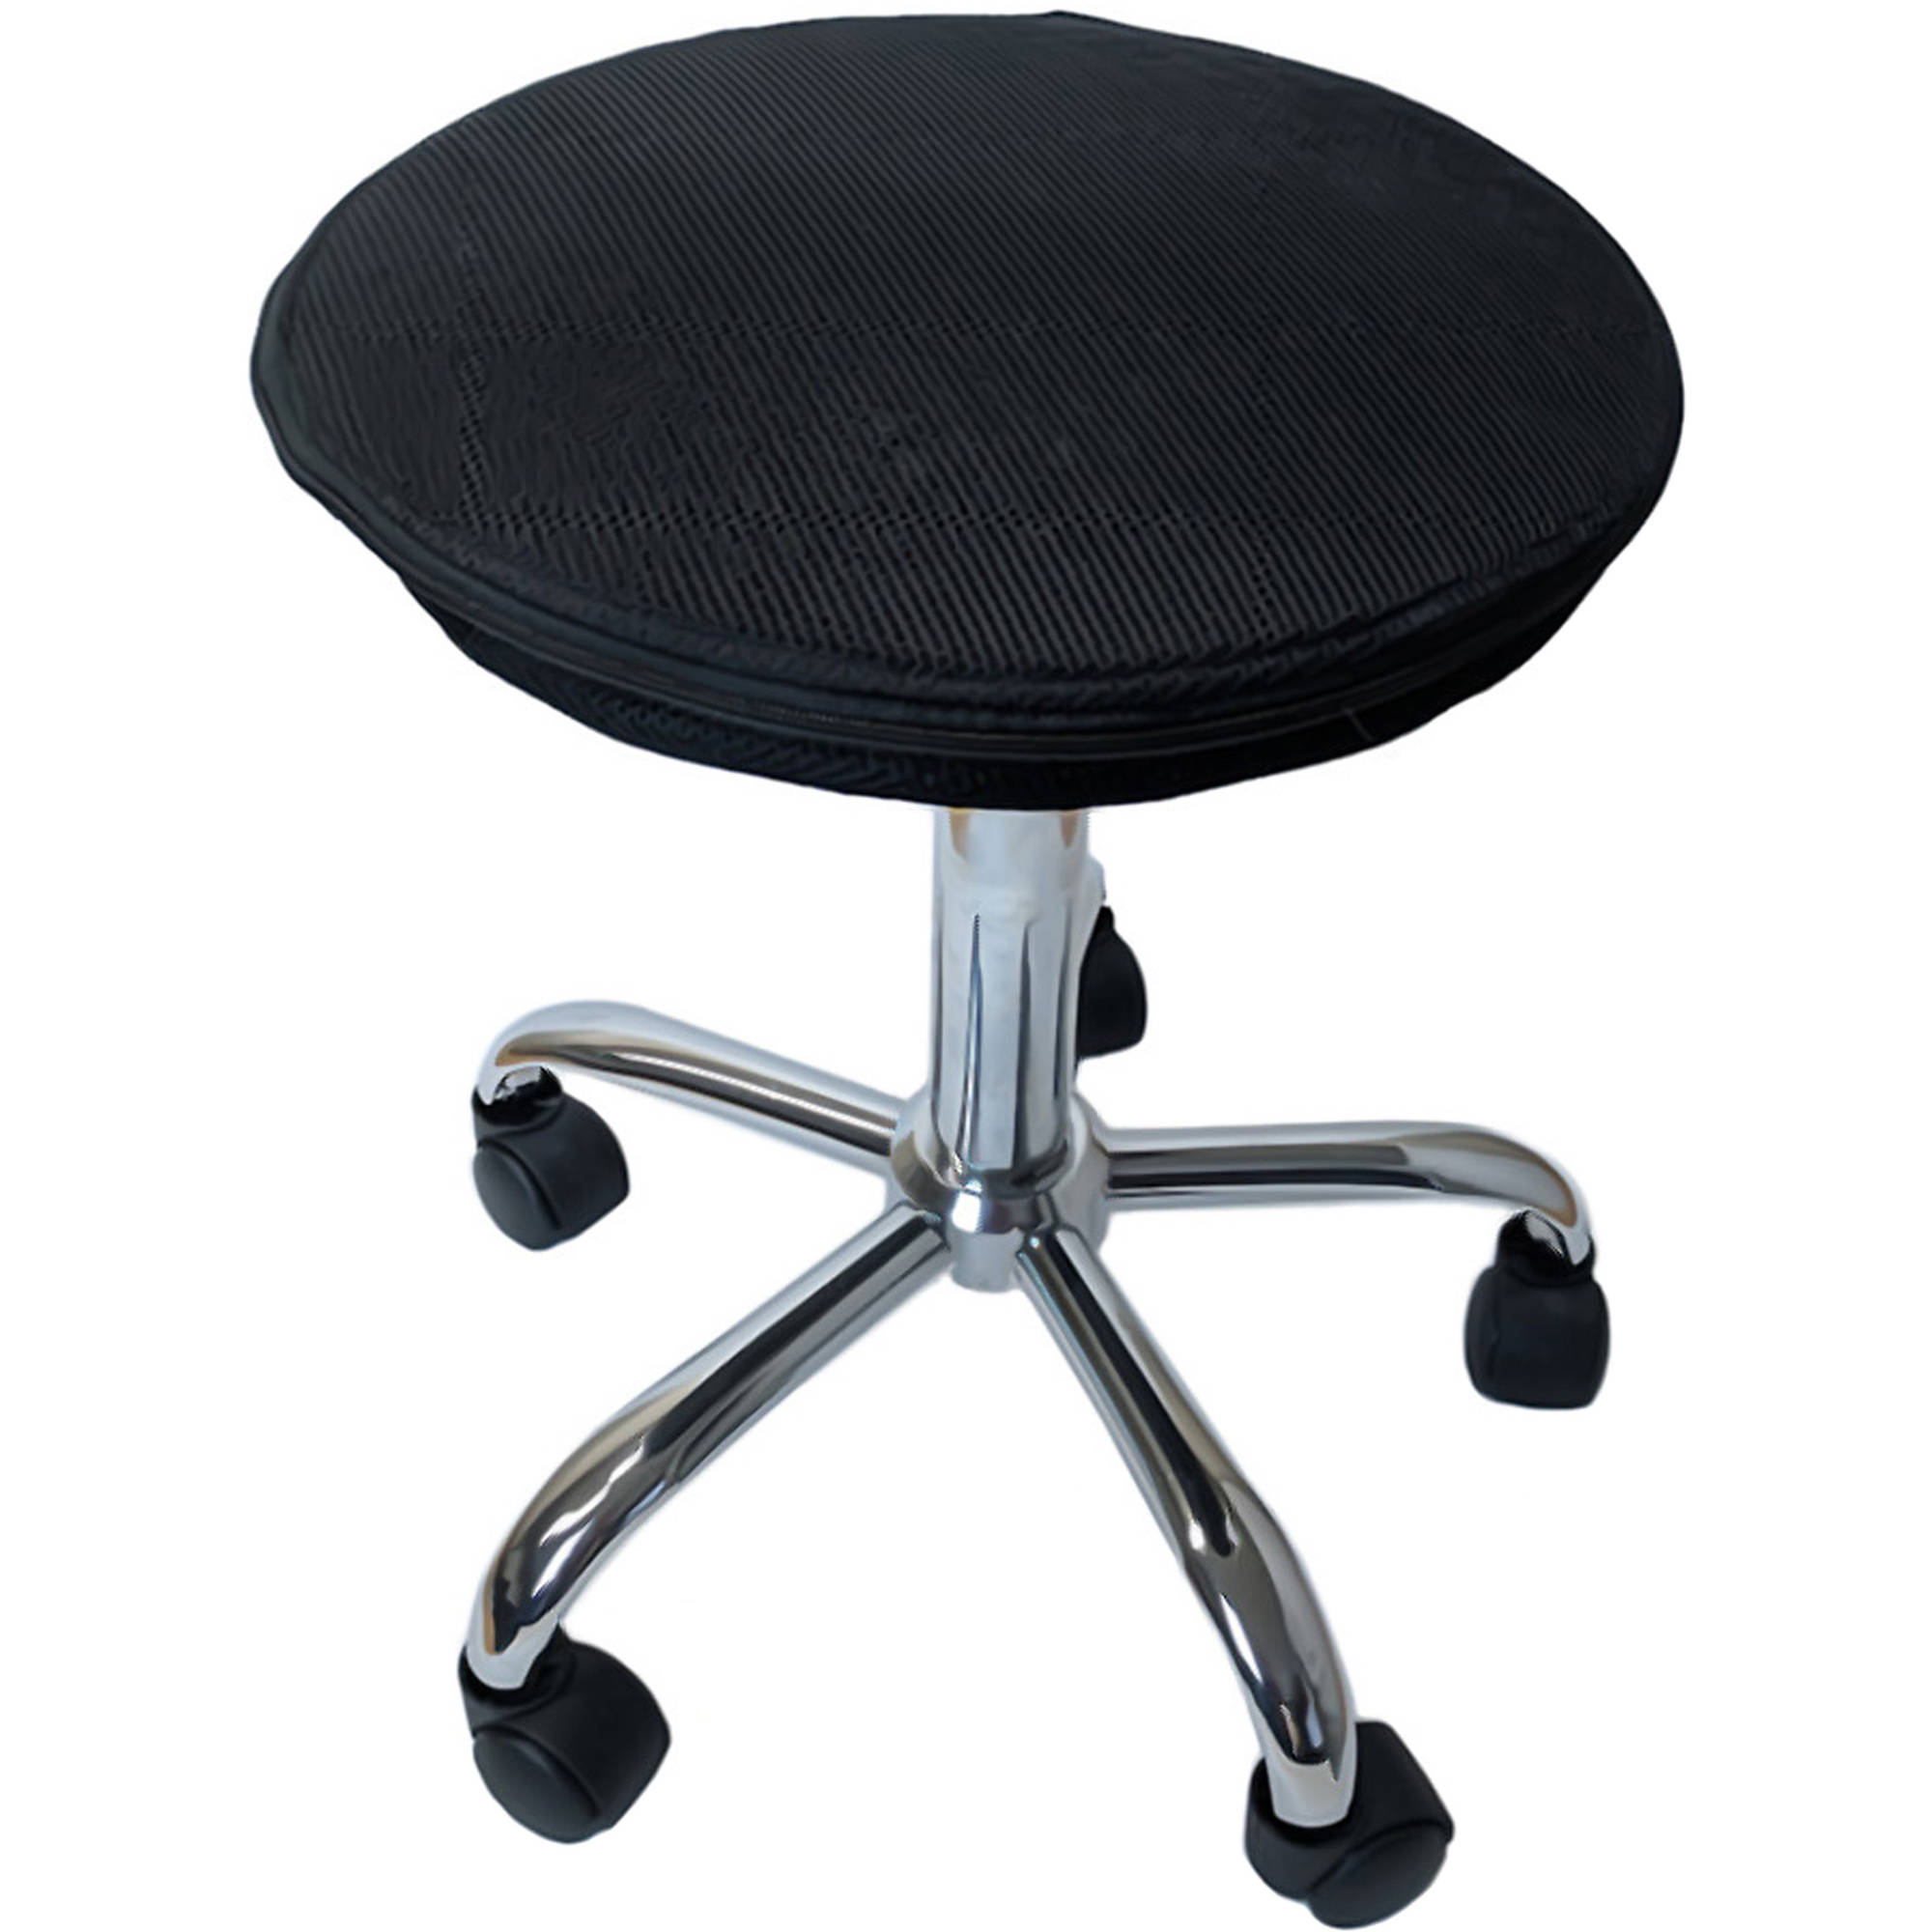 rolling stool chair walmart dining chairs uncaged ergonomics wobble air balance wsa b